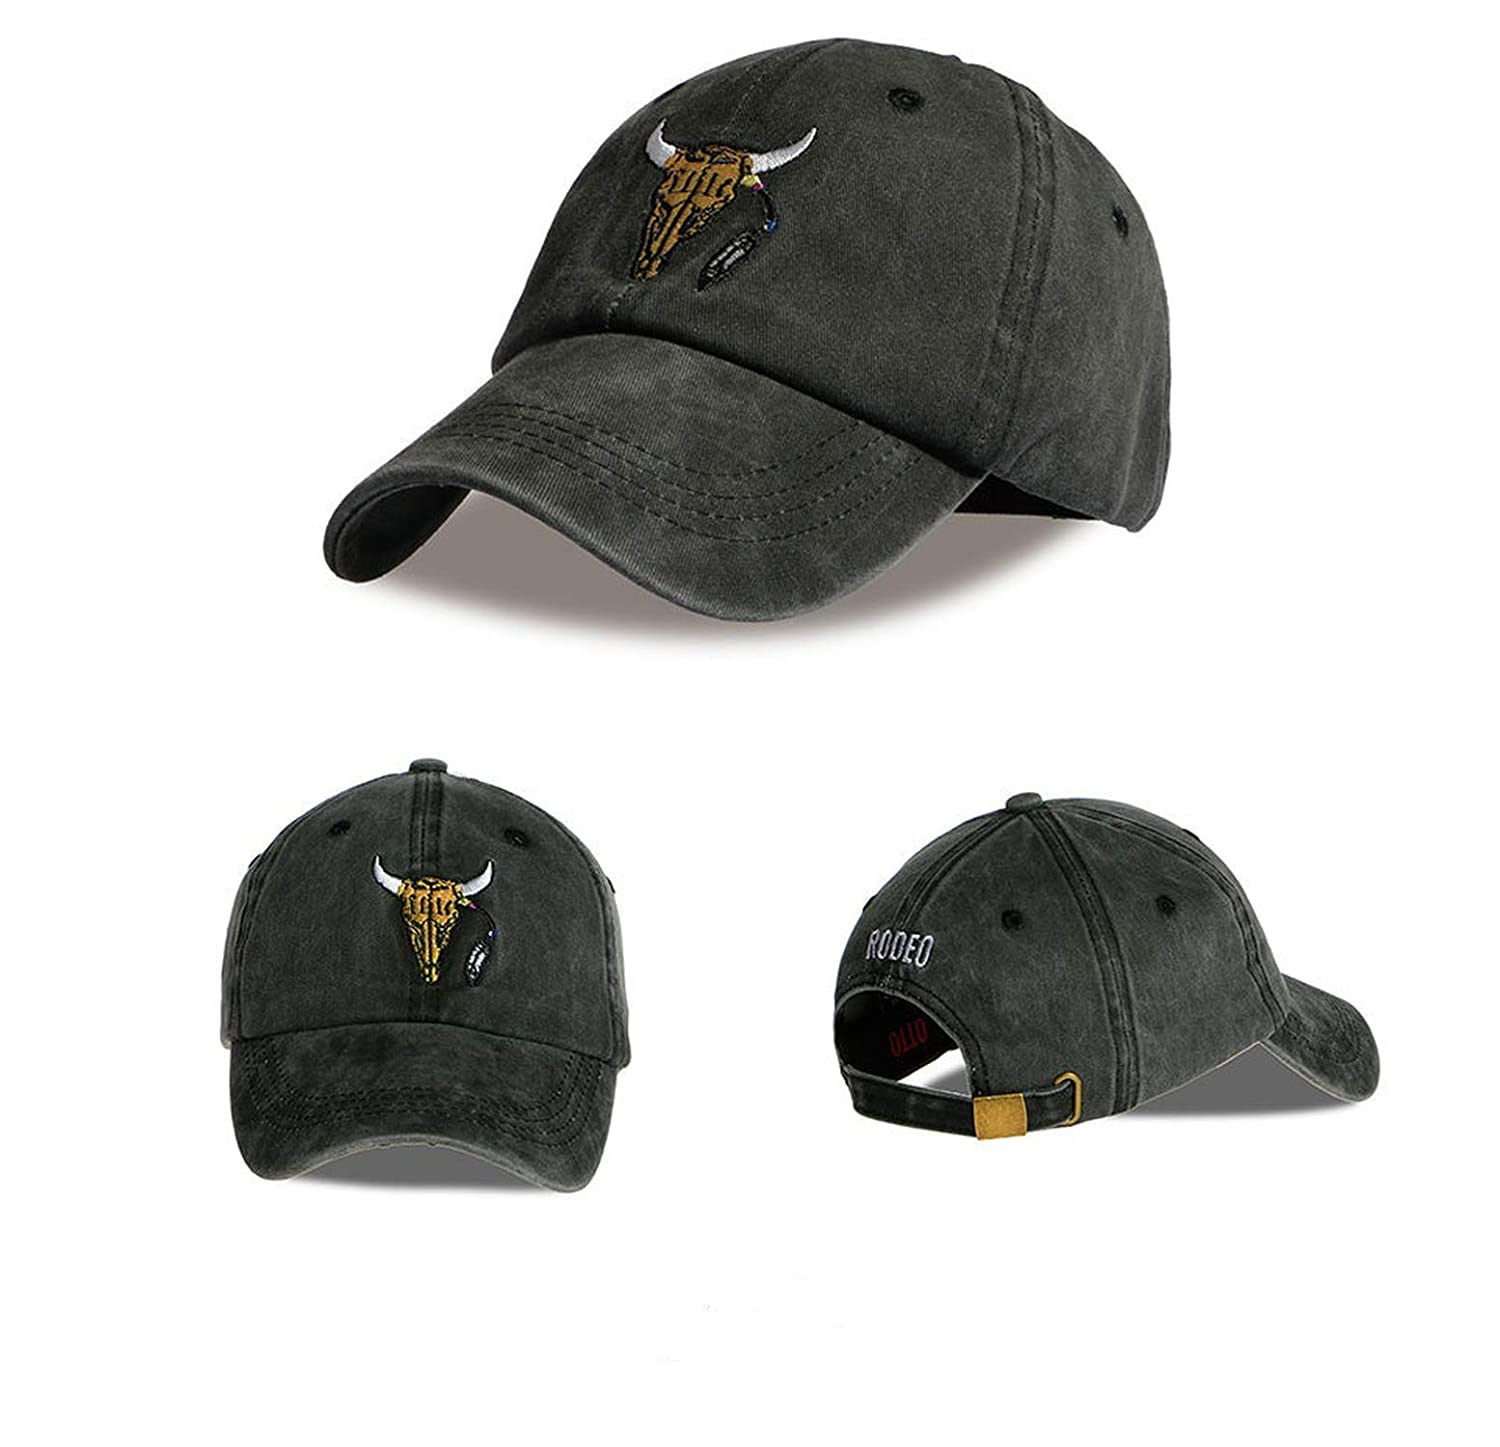 2019 Baseball Caps Customized Designer 6 Panel Dad Hat Baseball Hat Travis Scott Rodeo Cap Hats NX03